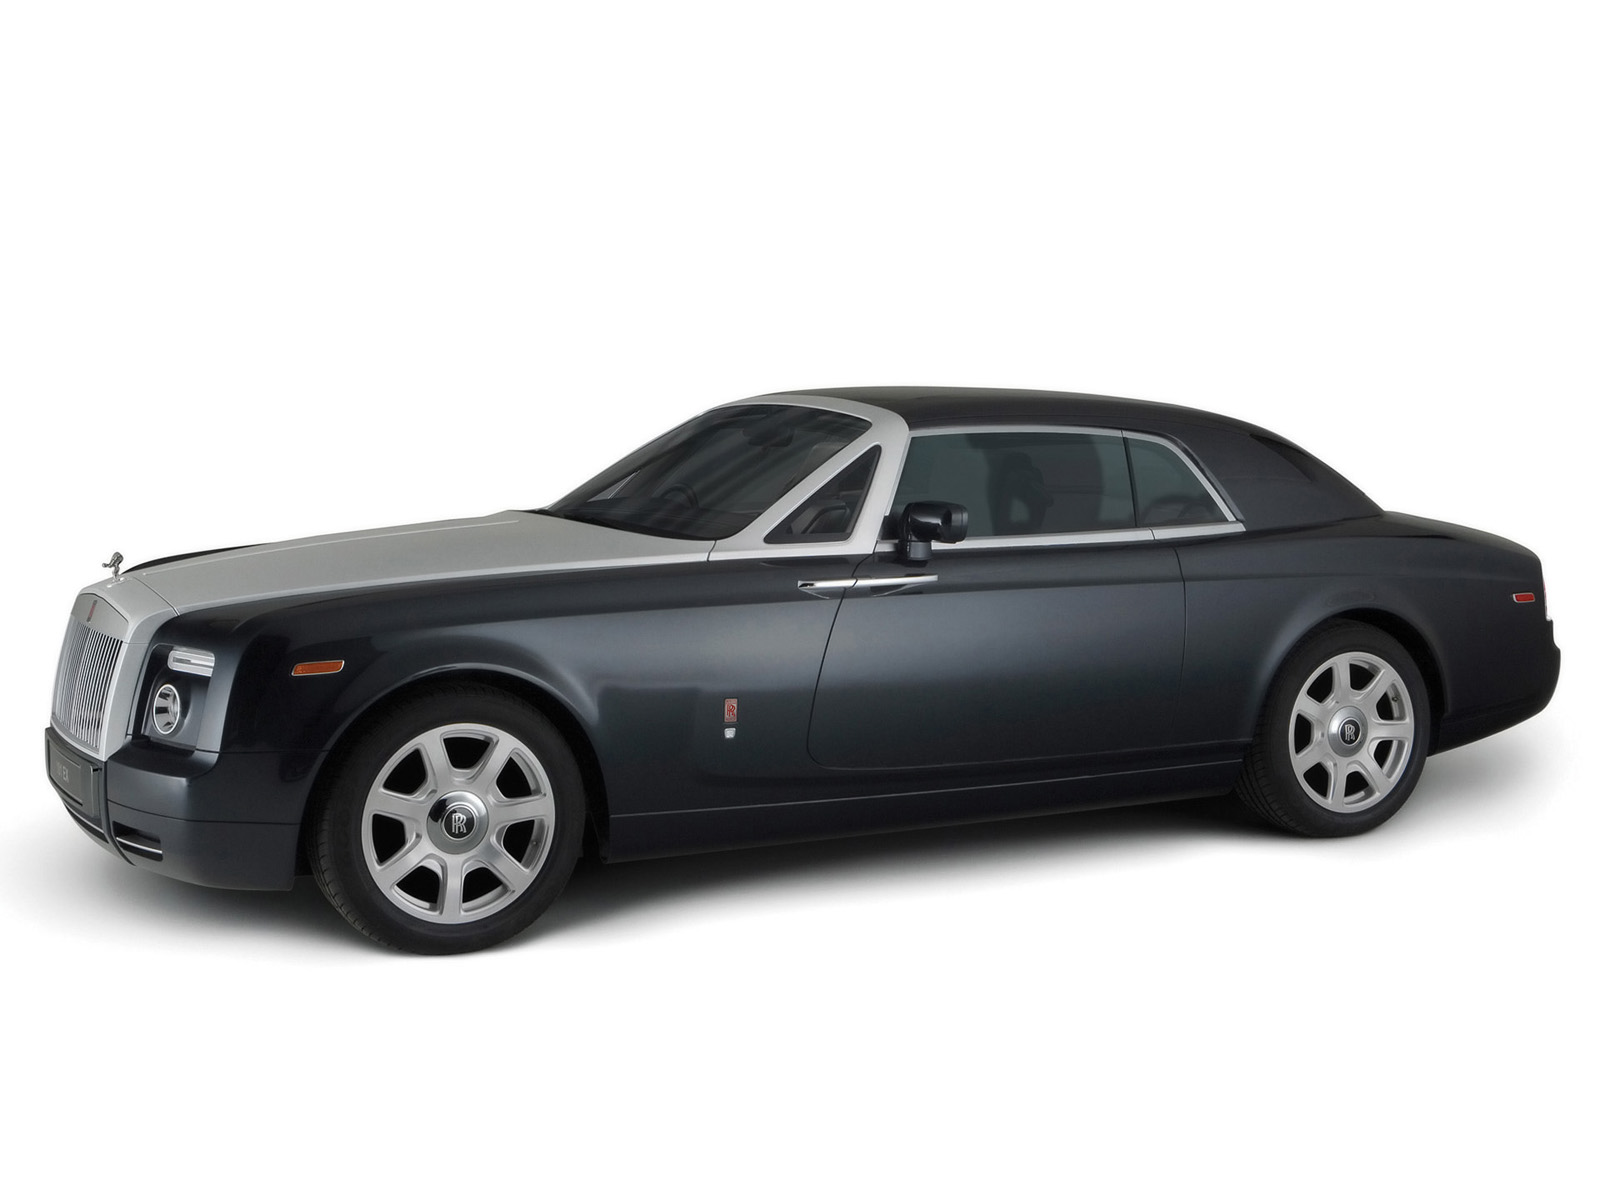 Free Download Image Of Rolls Royce 101ex